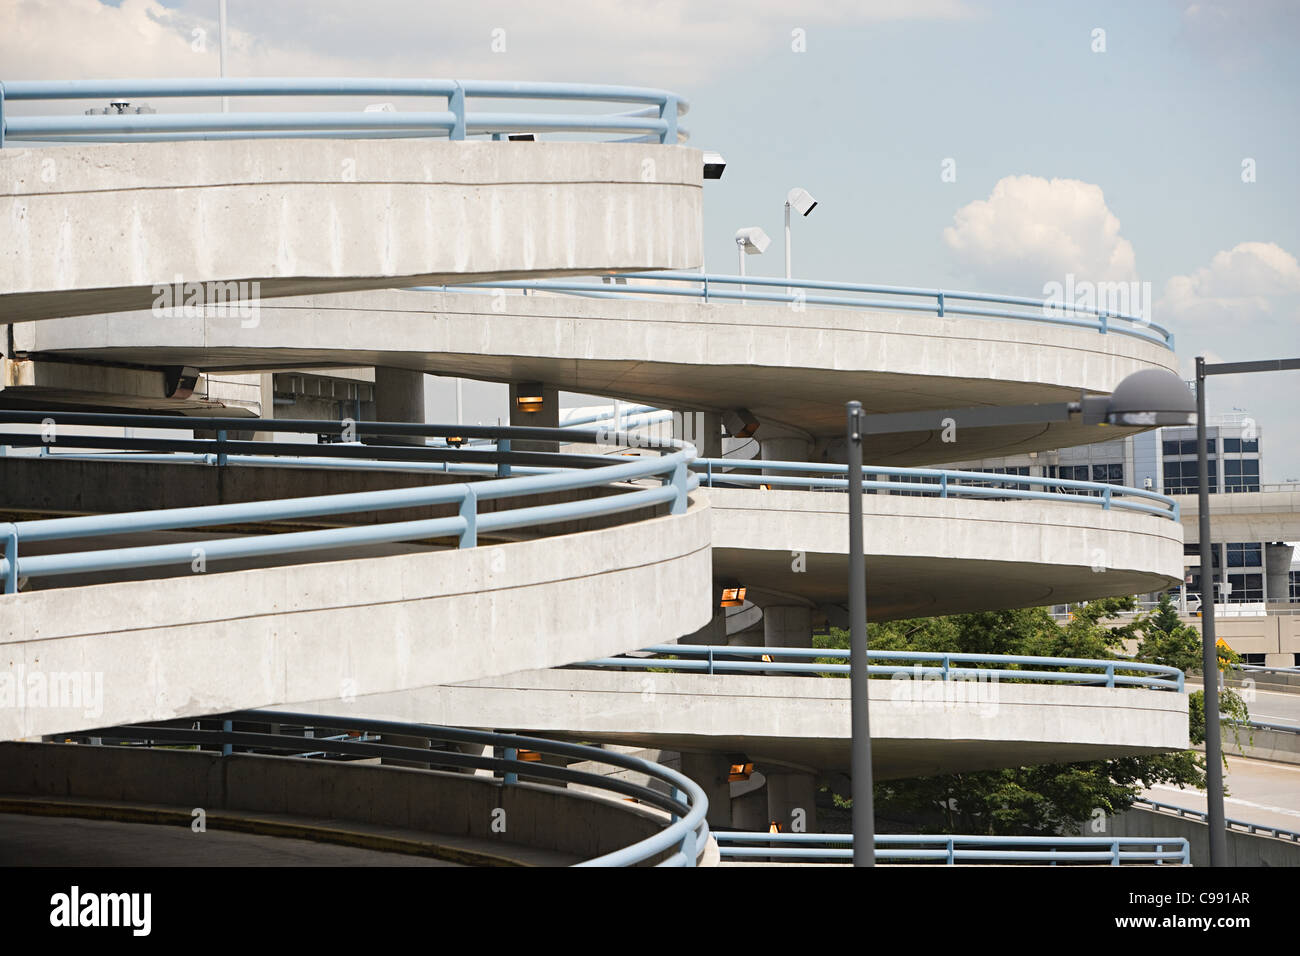 Curved ramp of parking lot - Stock Image